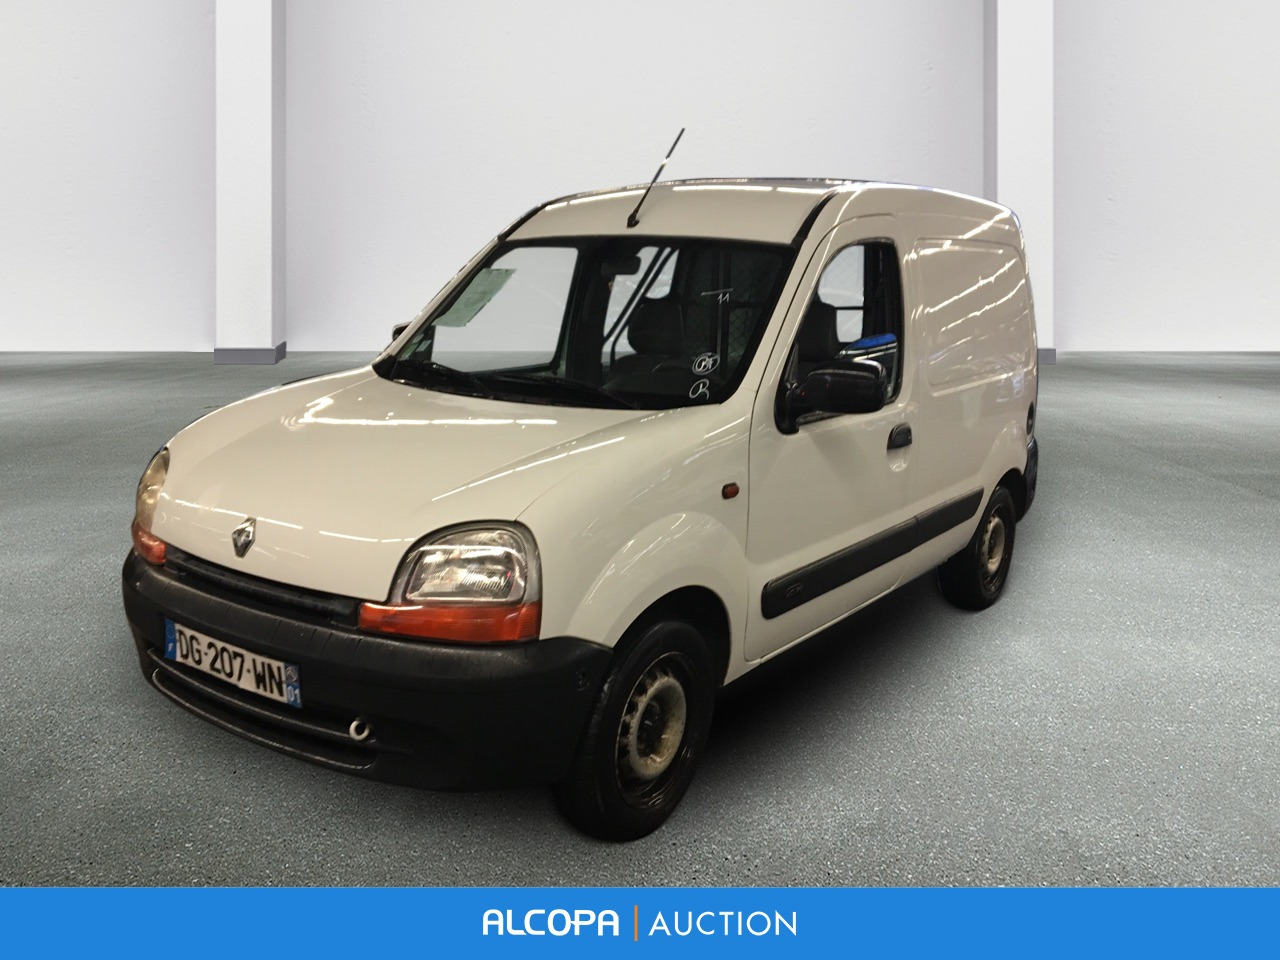 renault kangoo express kangoo express 1 5 dci 70 confort alcopa auction. Black Bedroom Furniture Sets. Home Design Ideas